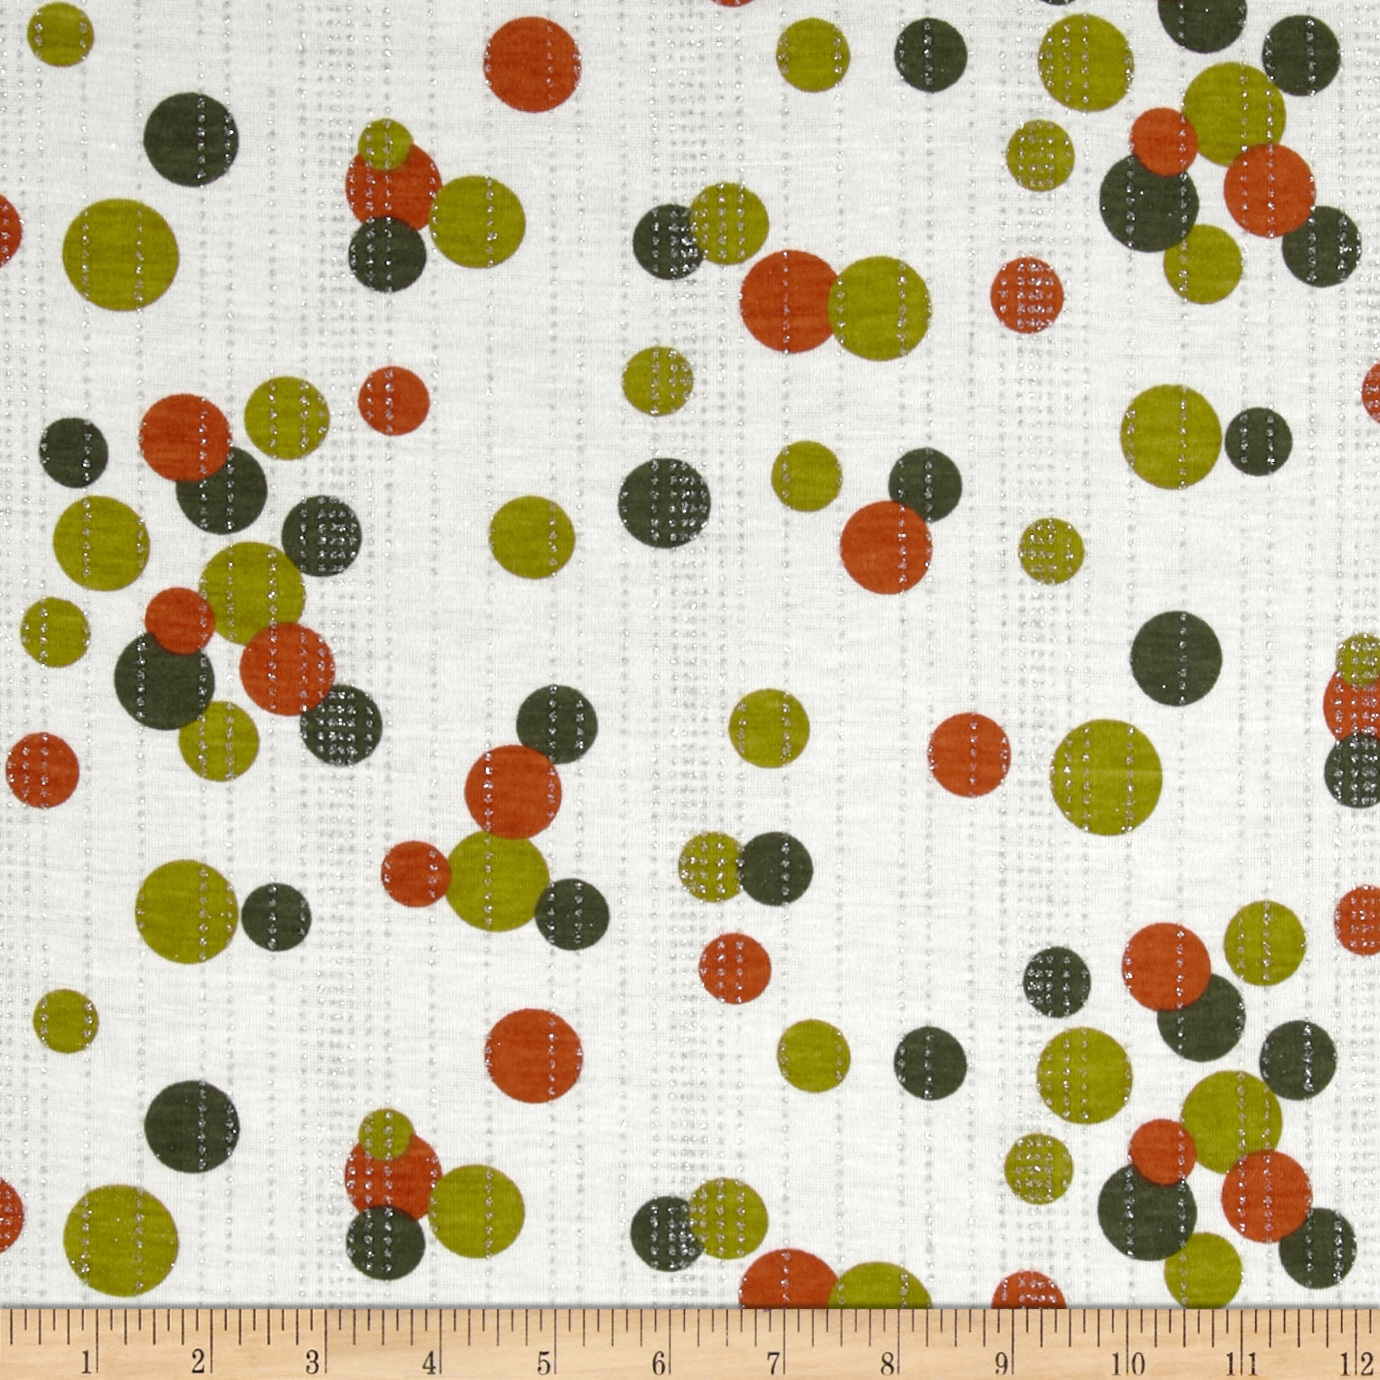 Stretch Rayon Blend Jersey Knit Dots White/Green/Orange